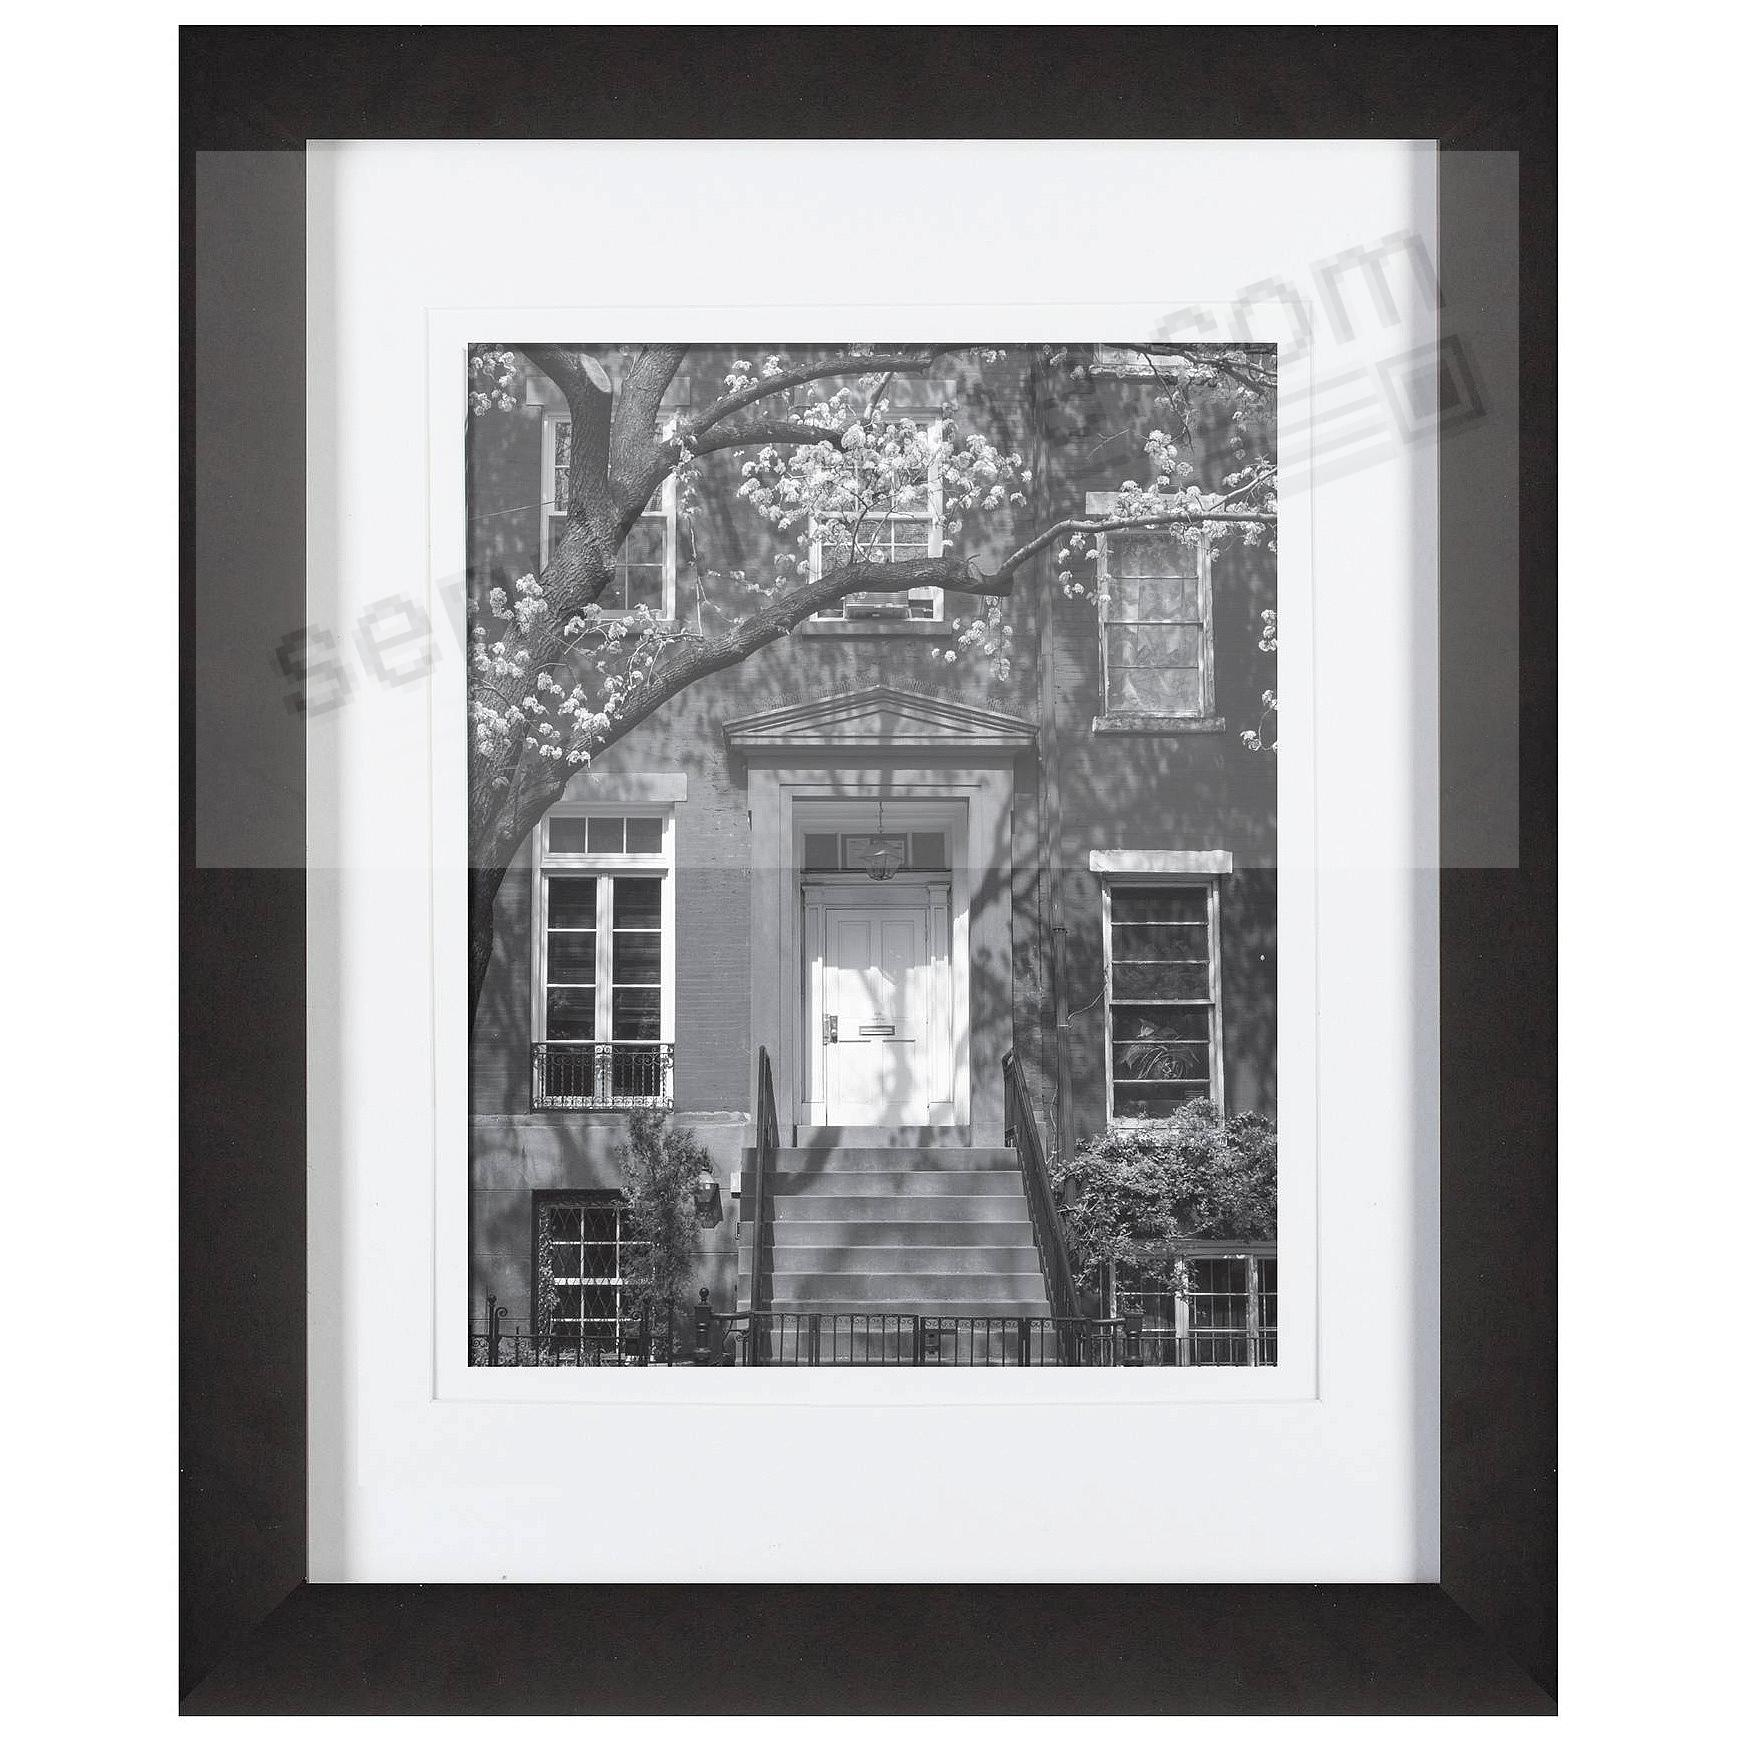 Black Wood Wall Frame 11x14 matted to 8x10 by Gallery Solutions™